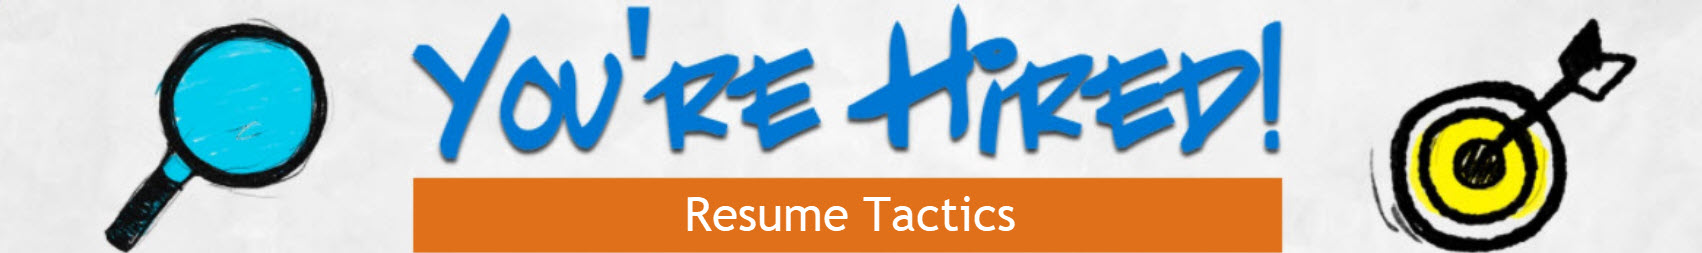 You're Hired! Resume Tactics - Job Search Strategies That Work E-book